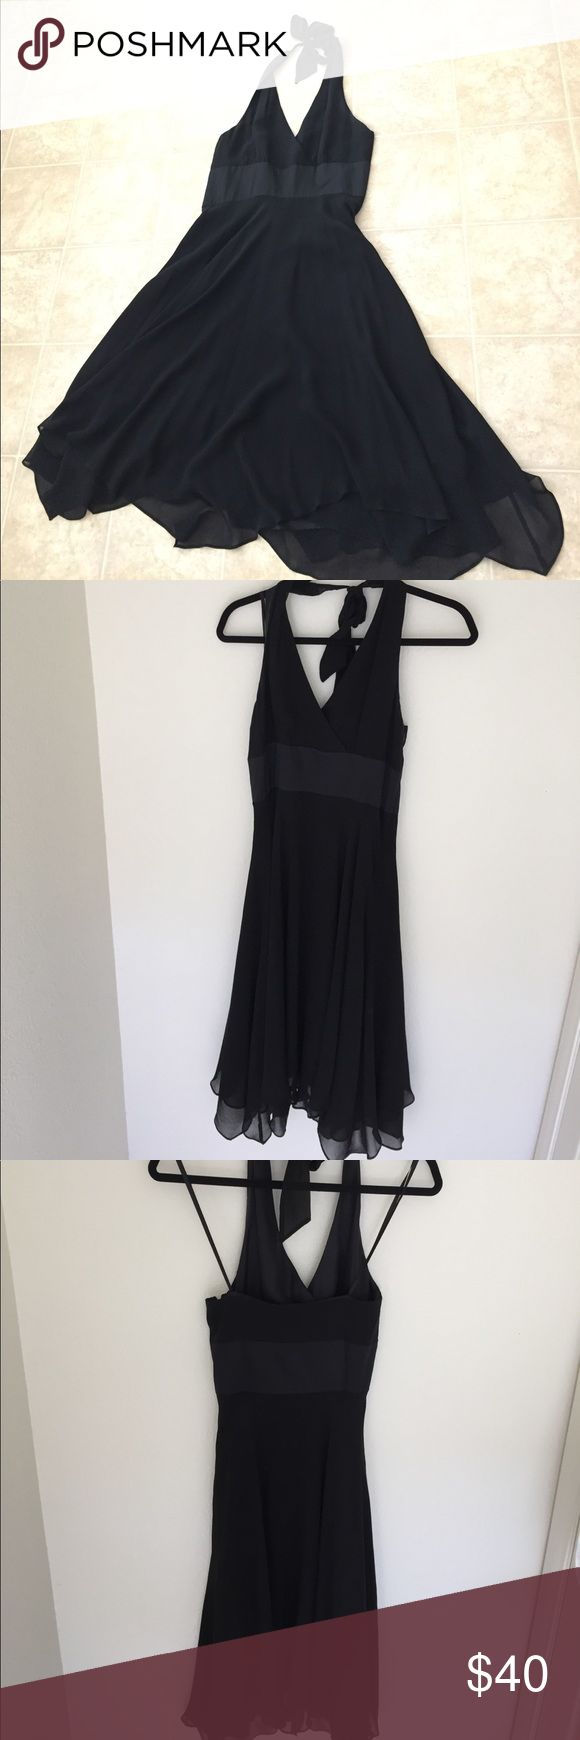 Donna Ricco semi-formal black silk dress. 6p This Donna Ricco black silk dress fastens halter style around the neck making it fully adjustable. It has threes layers of beautiful silk skirt for the perfect swish! 6p Donna Ricco Dresses Backless